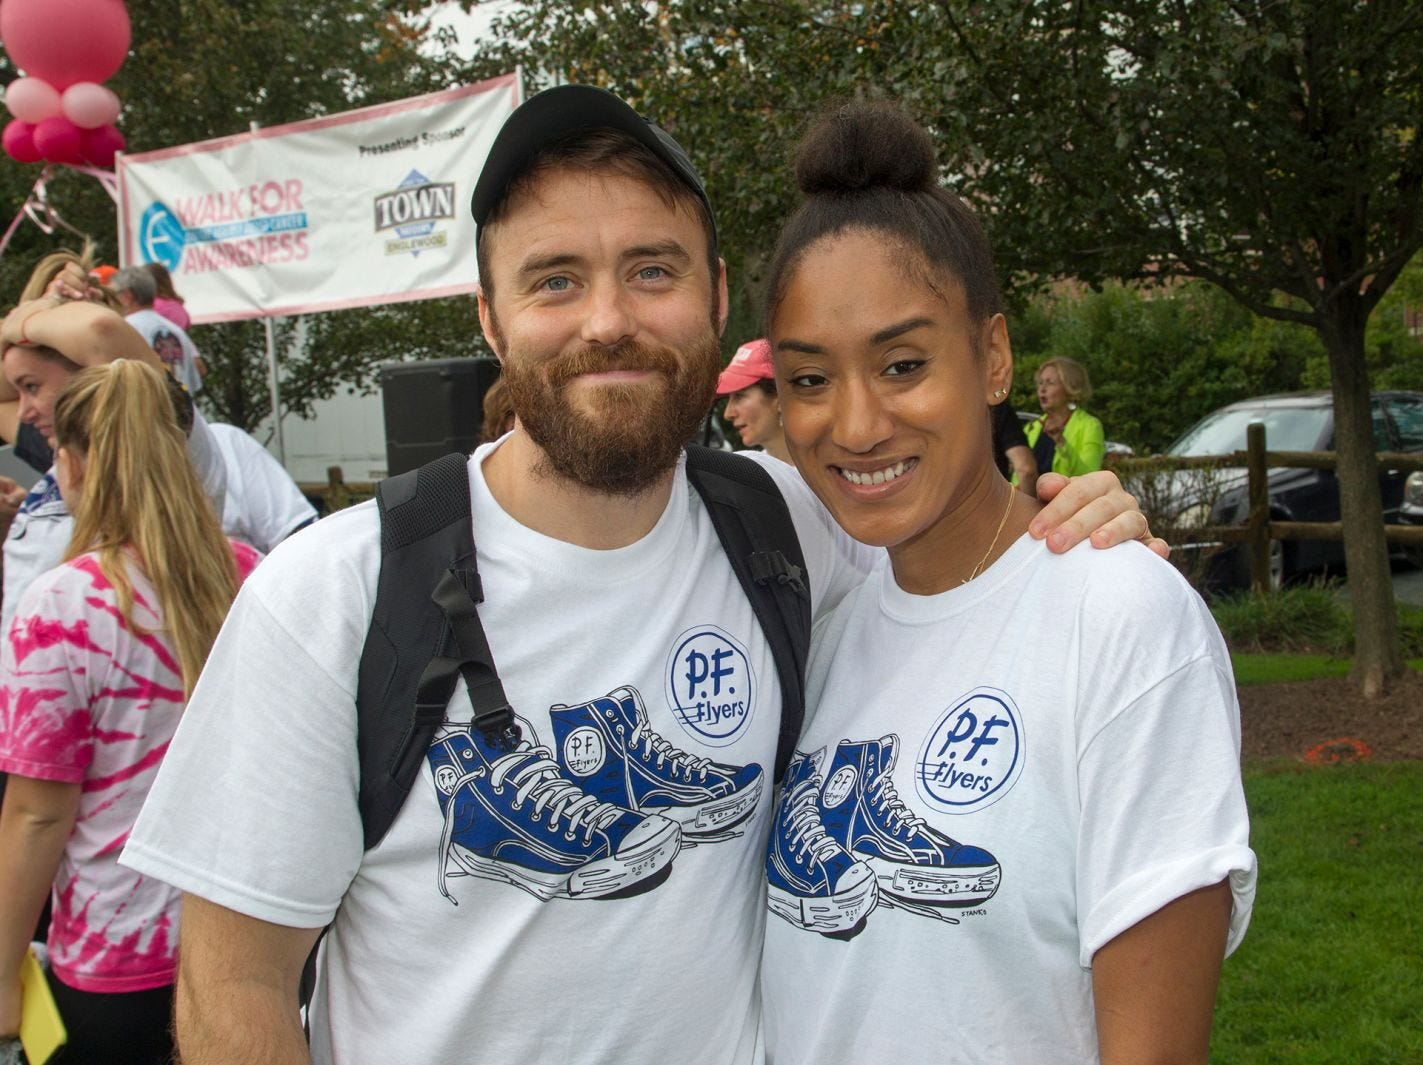 Kevin and Nadia. Englewood Health Foundation hosted its 2018 Walk for Awareness and Susan Lucianna Memorial Dog Walk dedicated in memory of Walk for Awareness co-founder Paul Fader, Esq. 10/07/2018